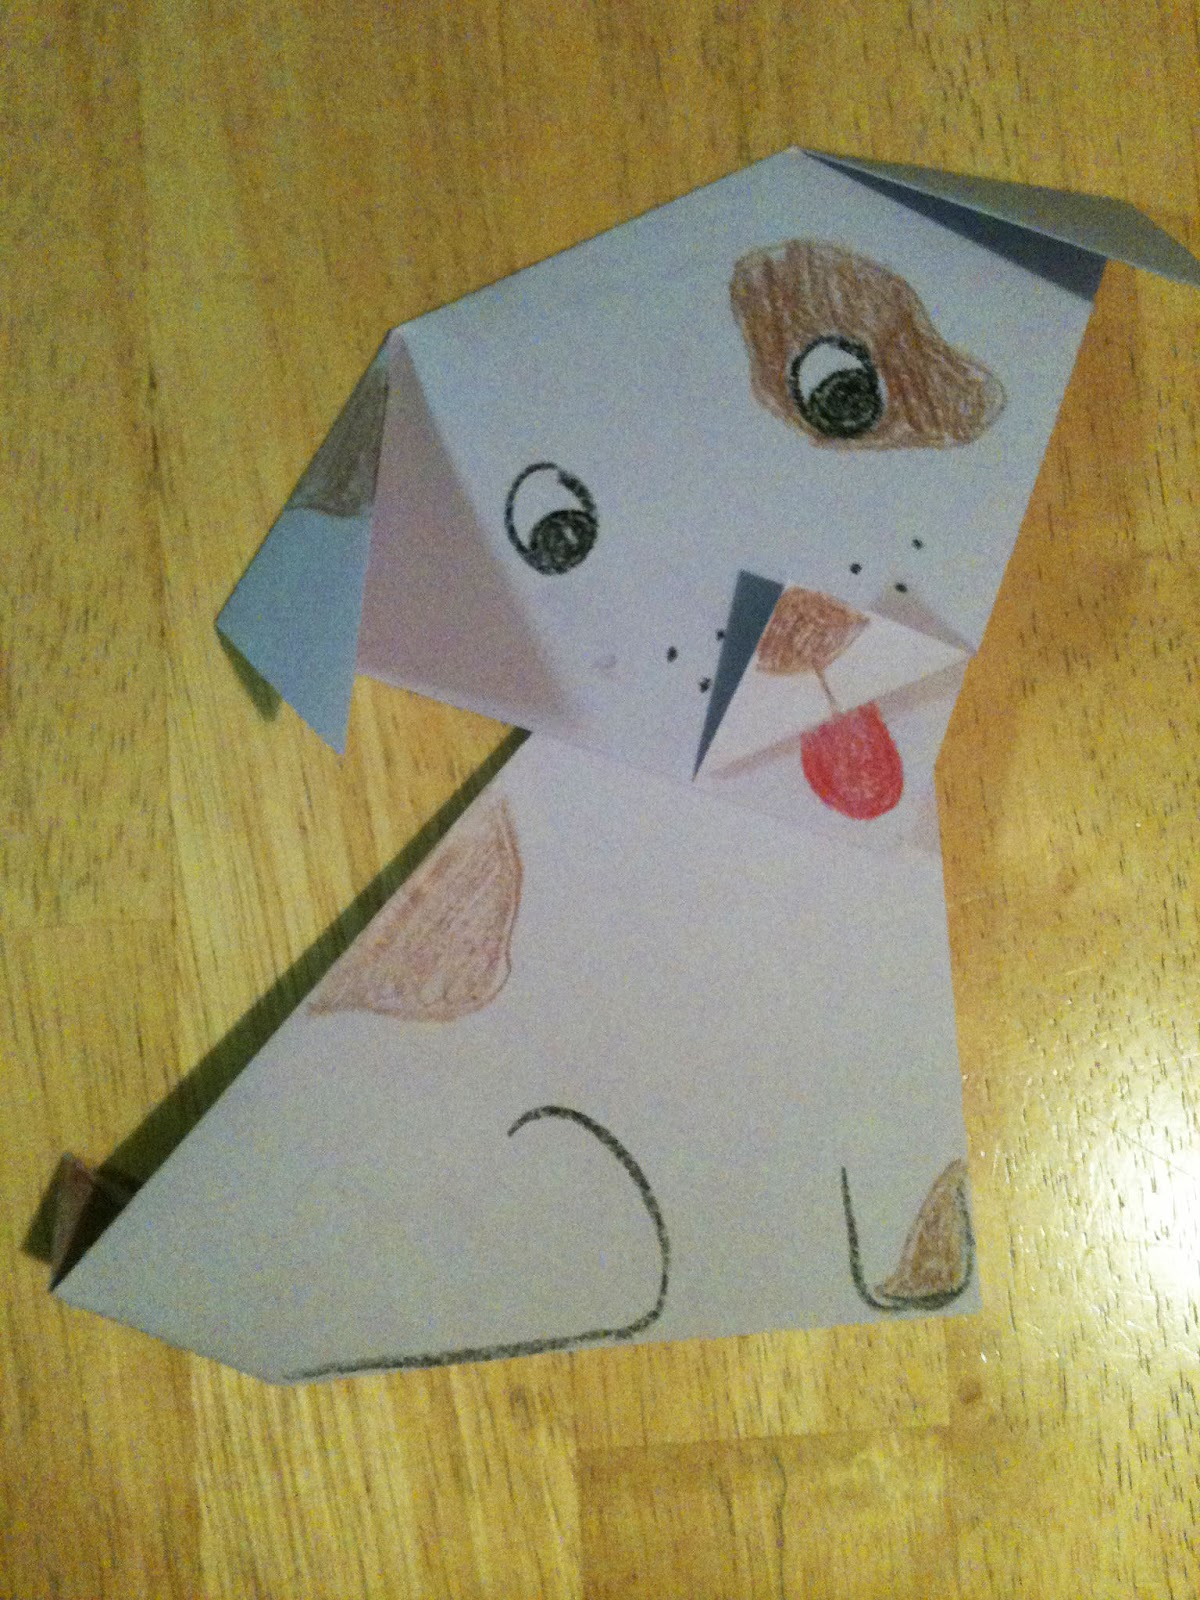 Origami dog face how to origami -  Origami Instructions Dog Kidspressmagazine Com Artforkidshub Com Fingerpaintinggenius Blogspot Com